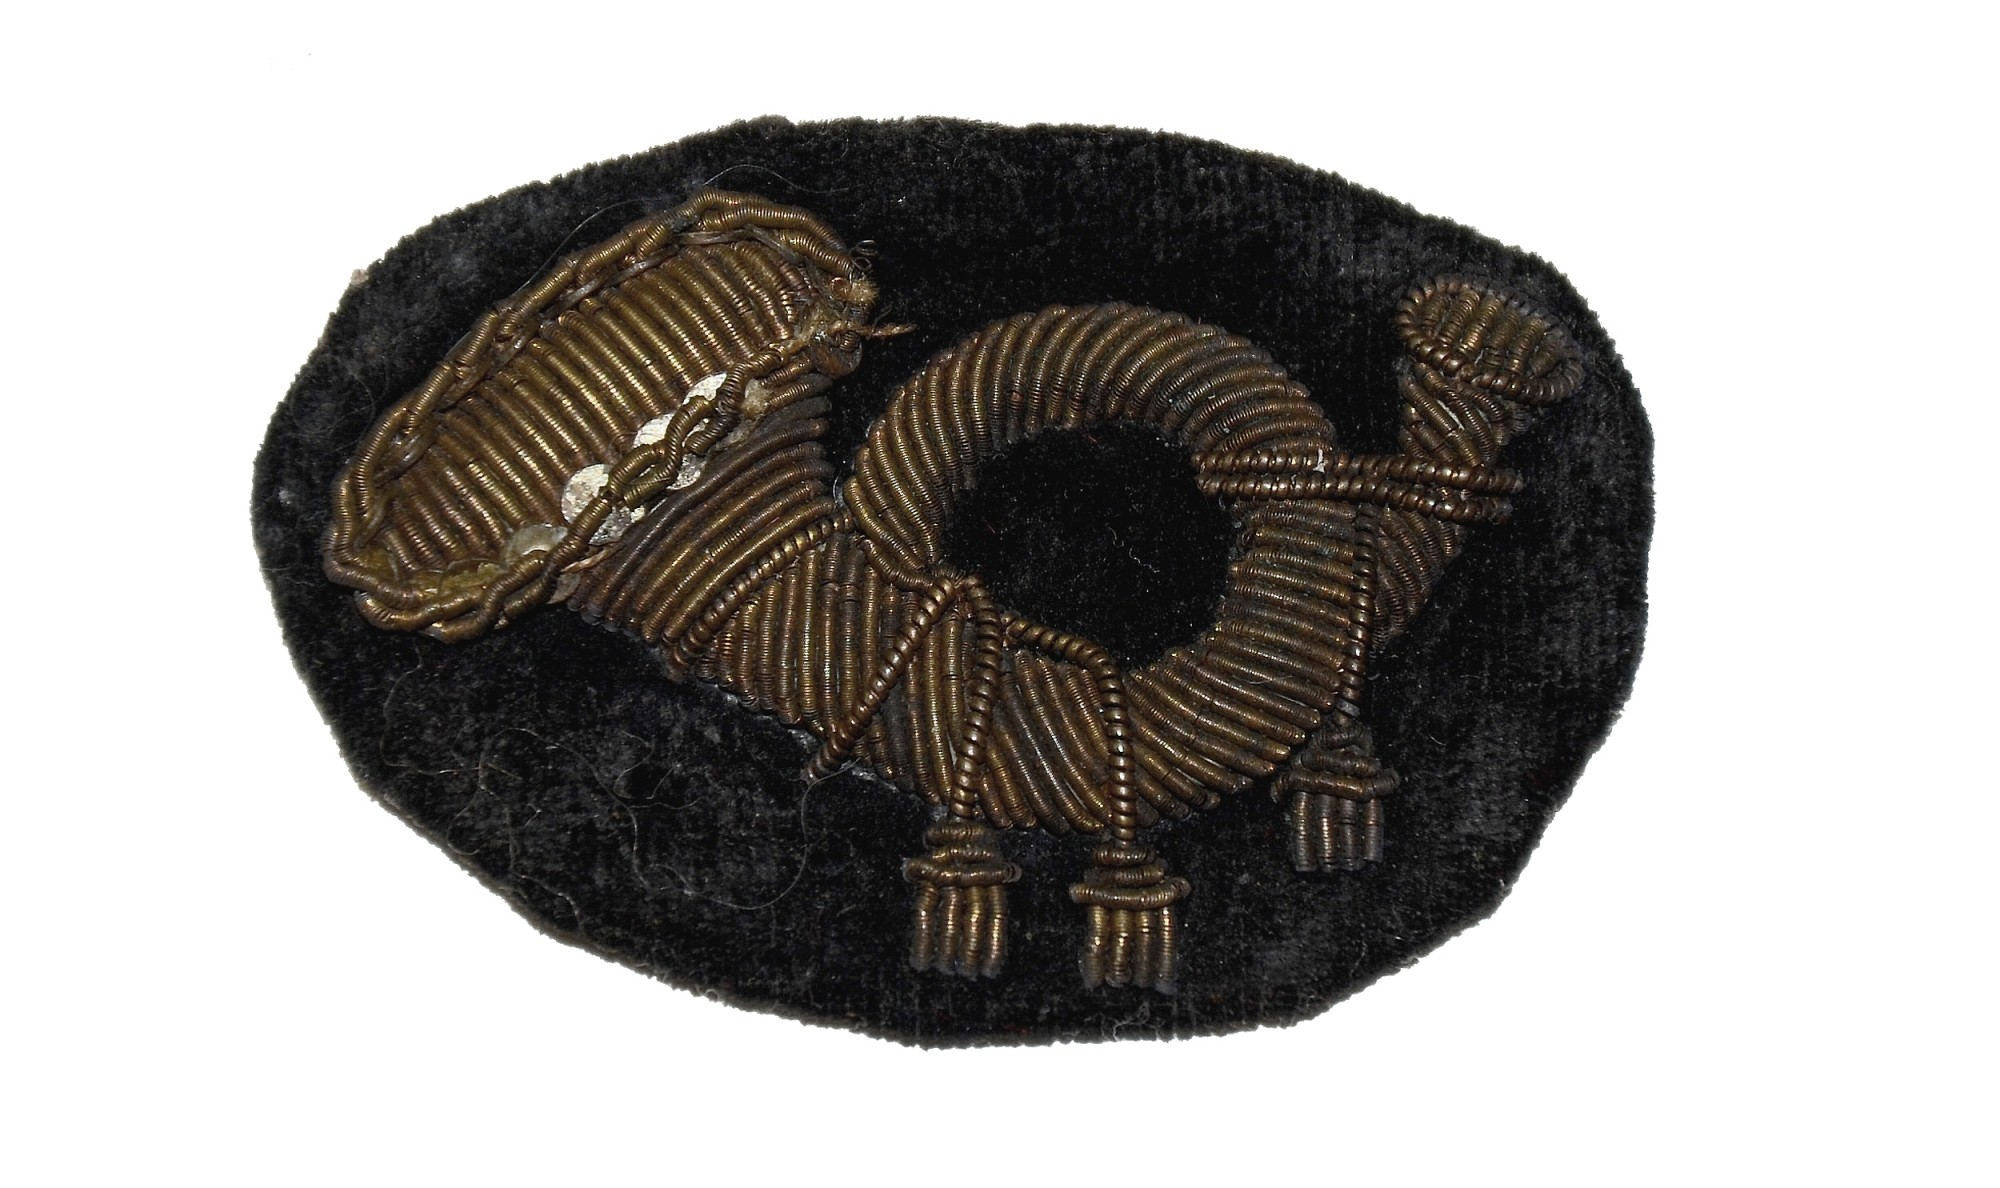 CIVIL WAR EMBROIDERED INFANTRY INSIGNIA FOR FORAGE CAP